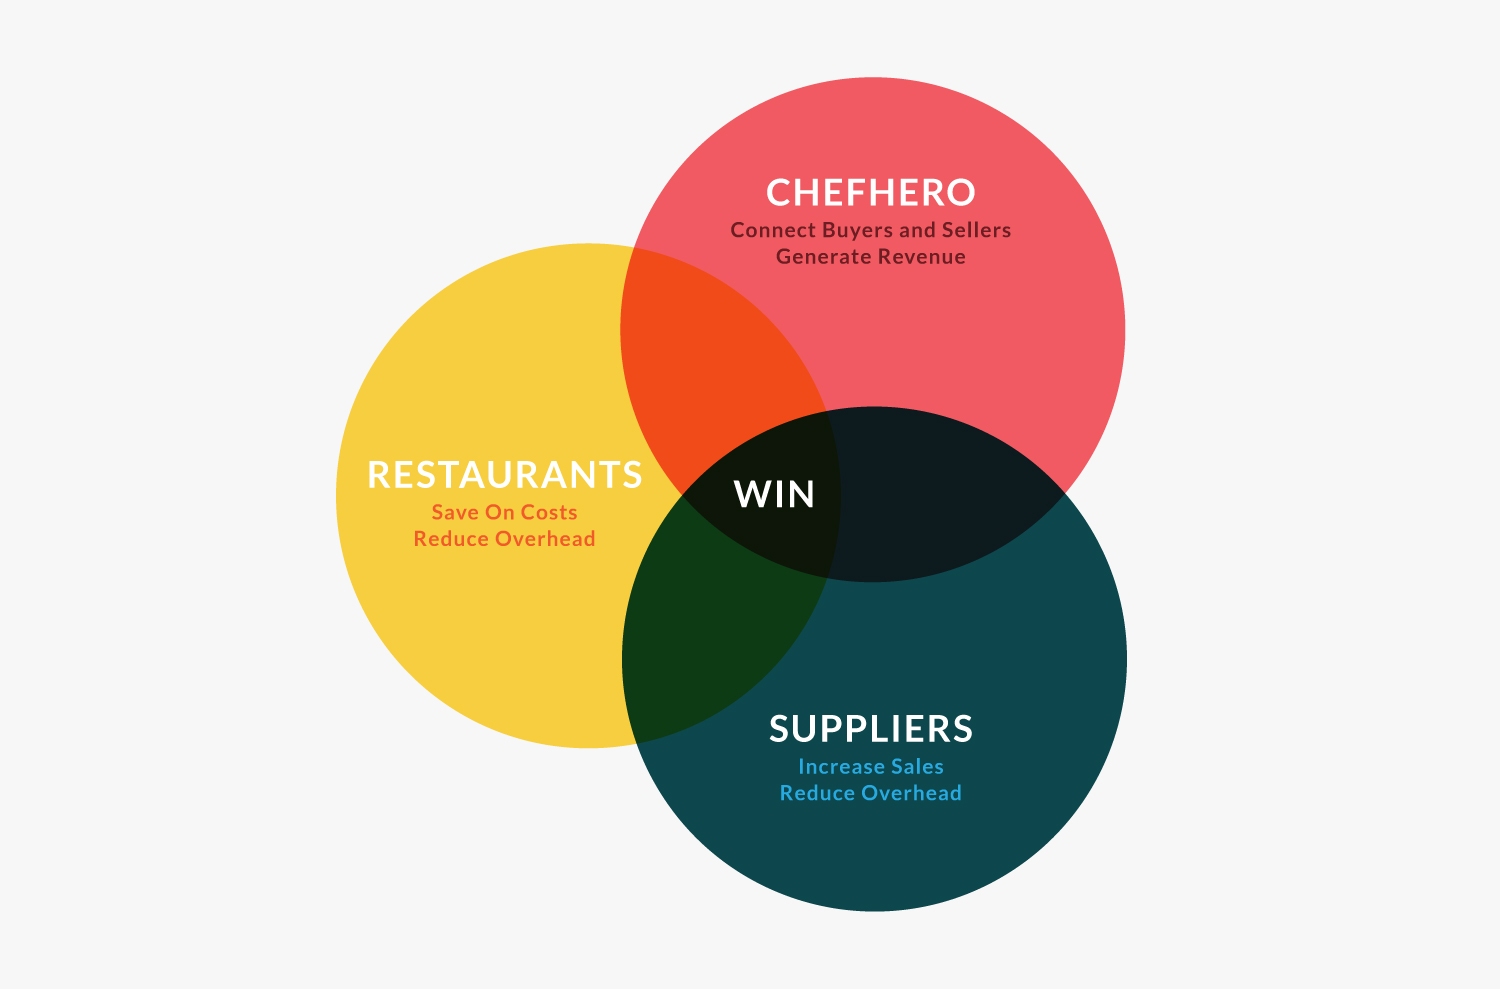 How ChefHero Wins